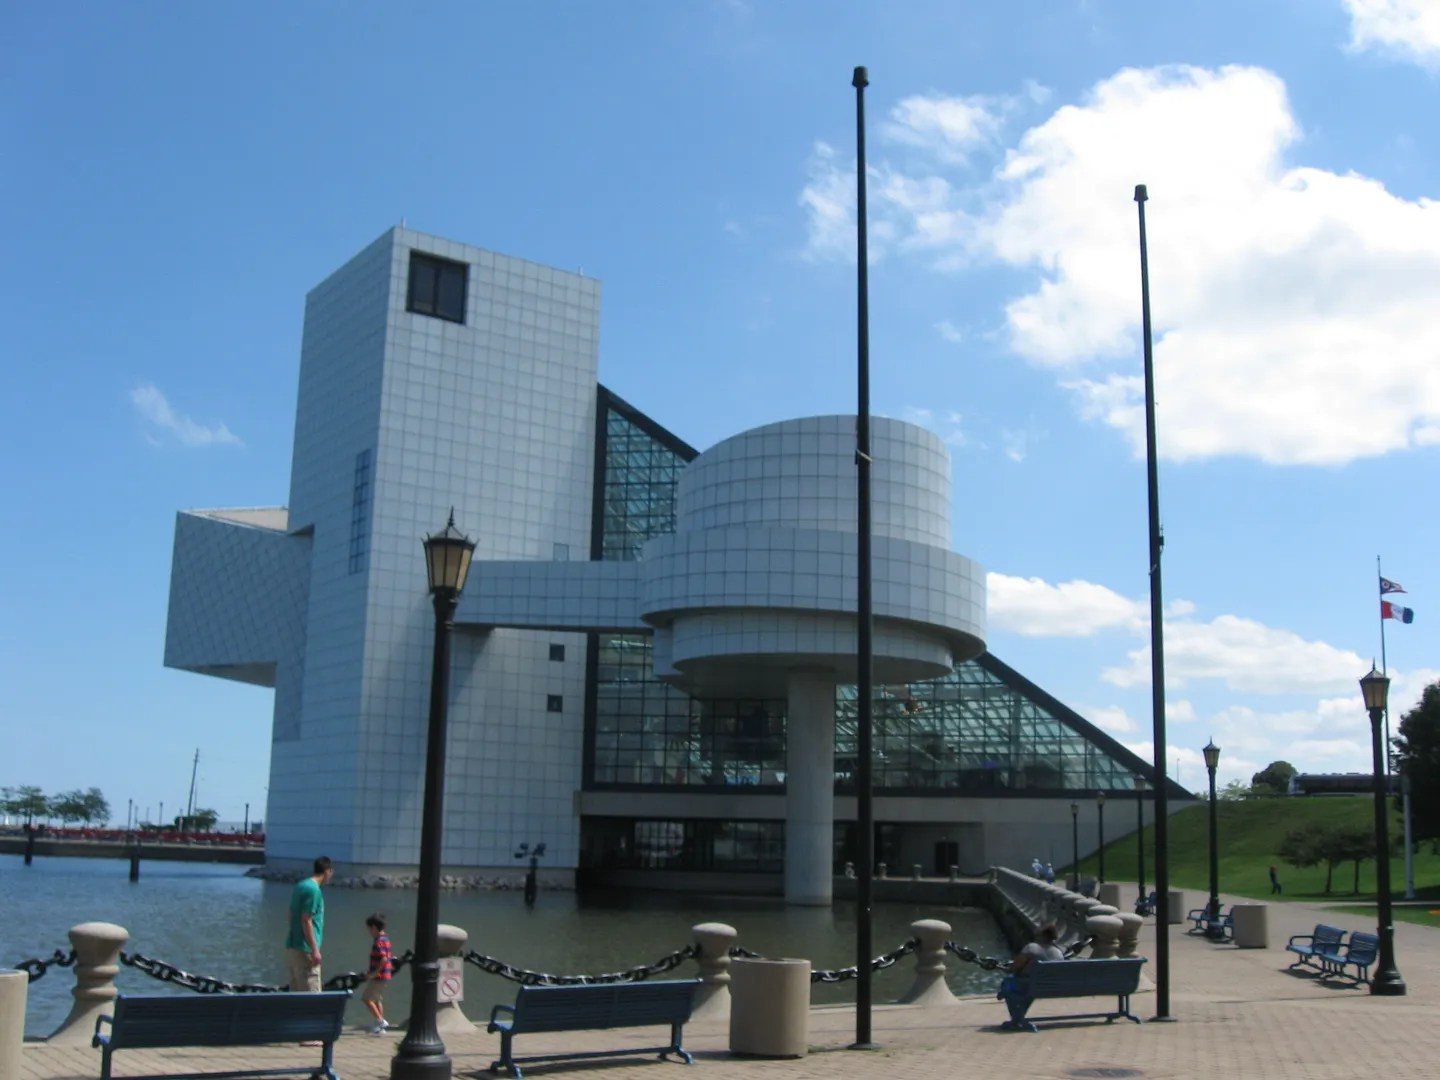 Rock and Roll Hall of Fame Museum, Cleveland, Ohio